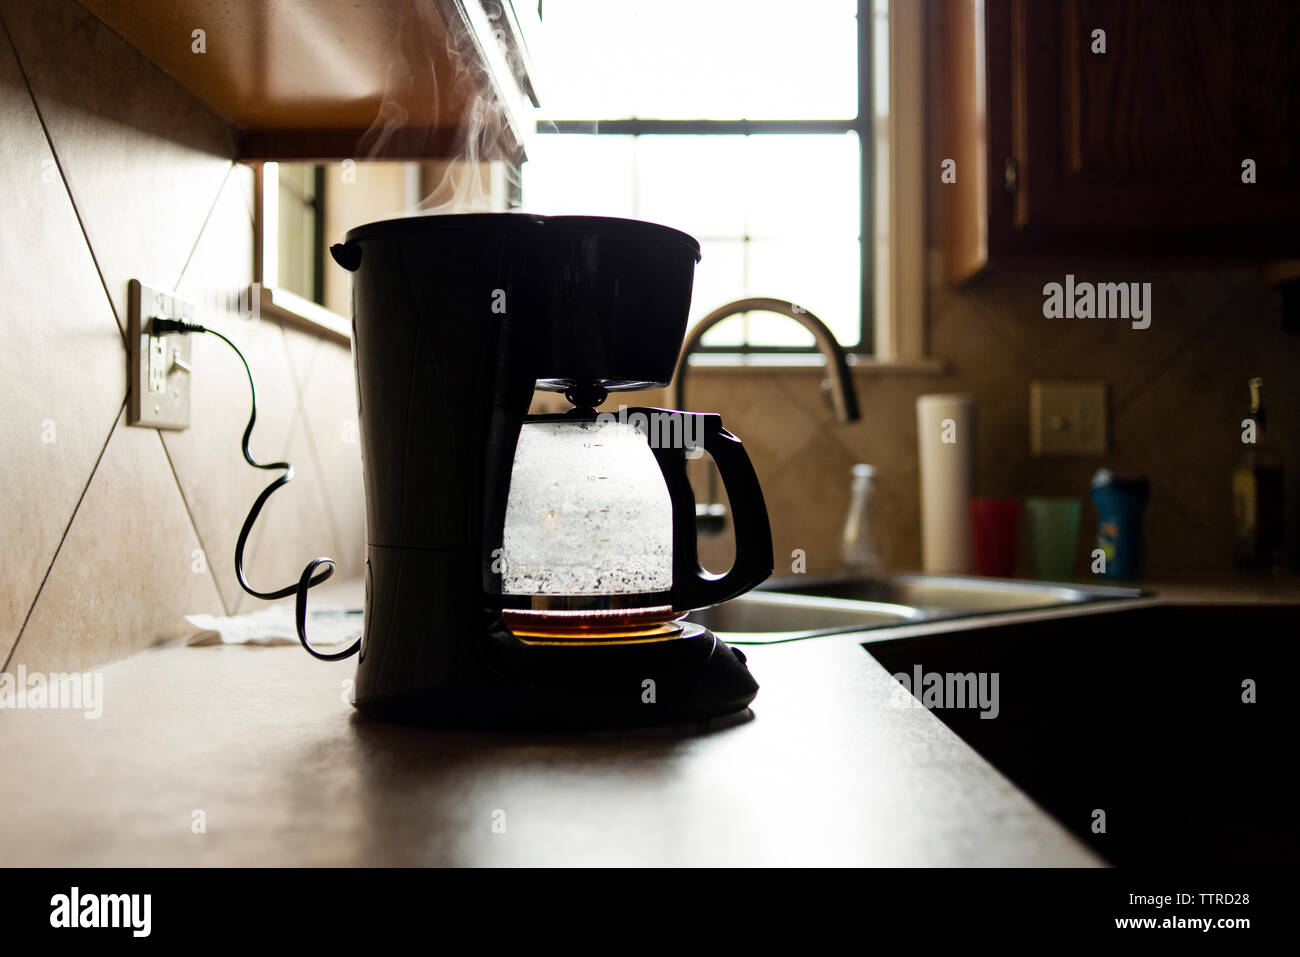 Coffee maker on kitchen counter - Stock Image